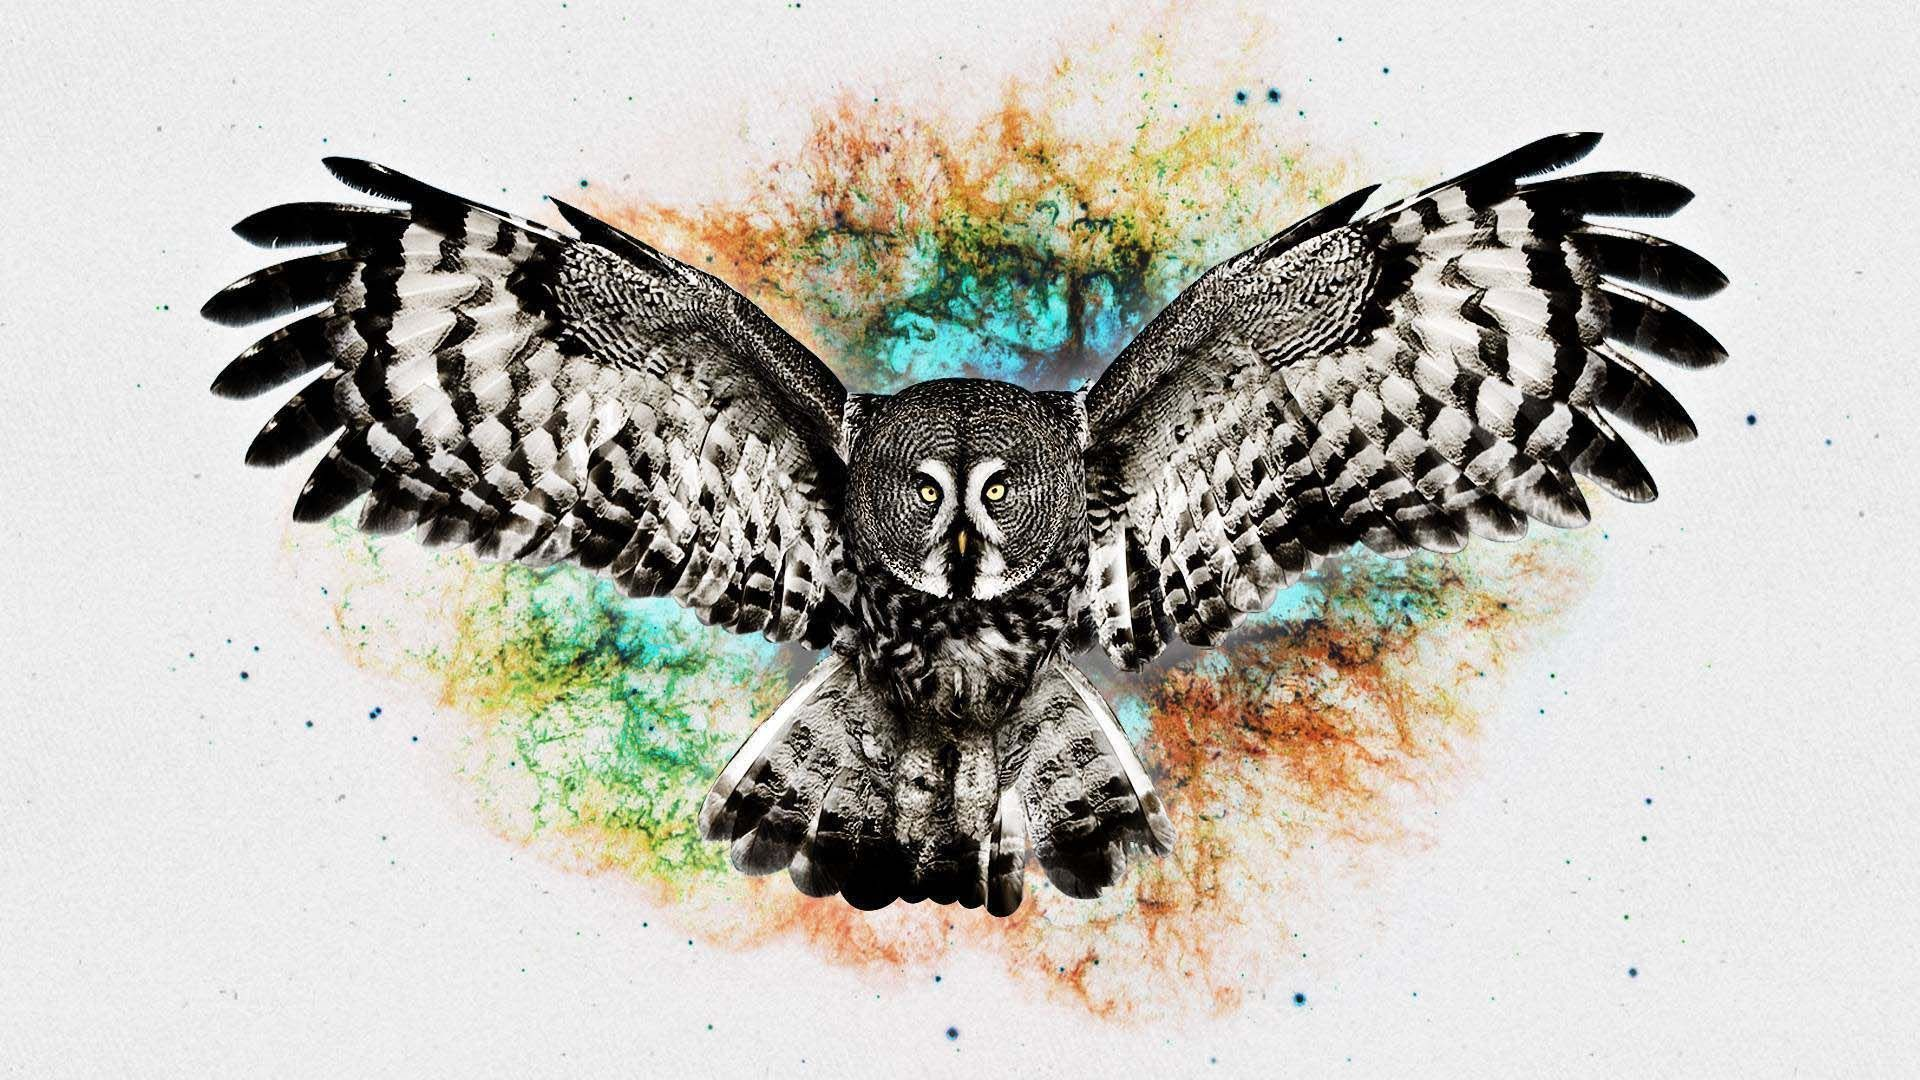 Abstract Owl Wallpapers Top Free Abstract Owl Backgrounds Wallpaperaccess